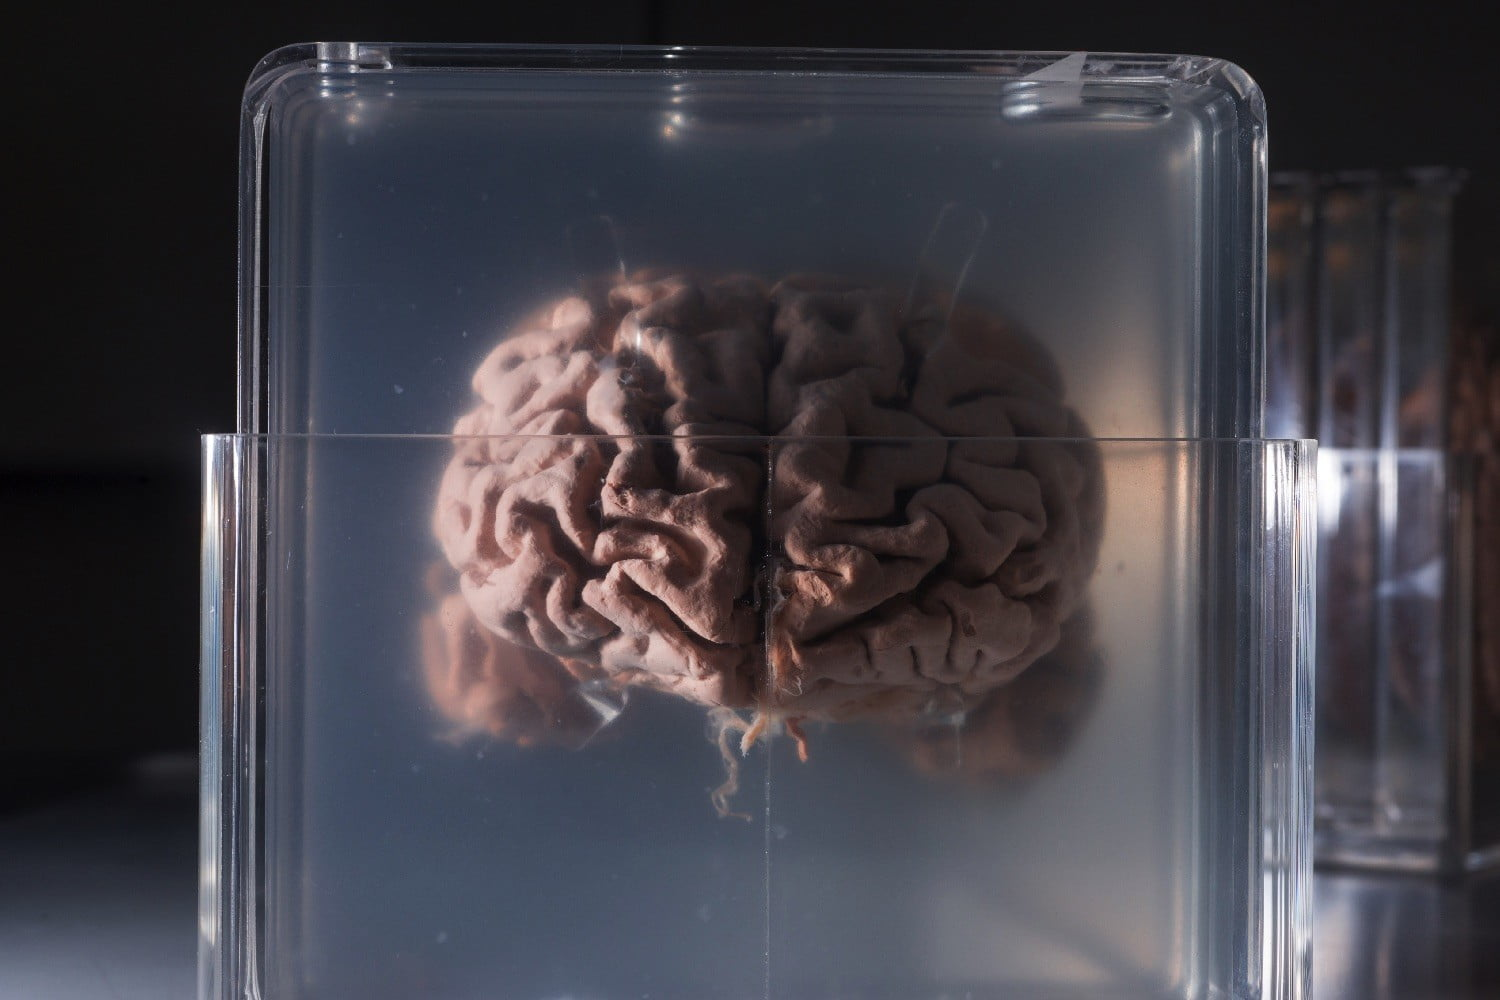 Doctors are fighting brain cancer by growing mini-brains to test treatments on